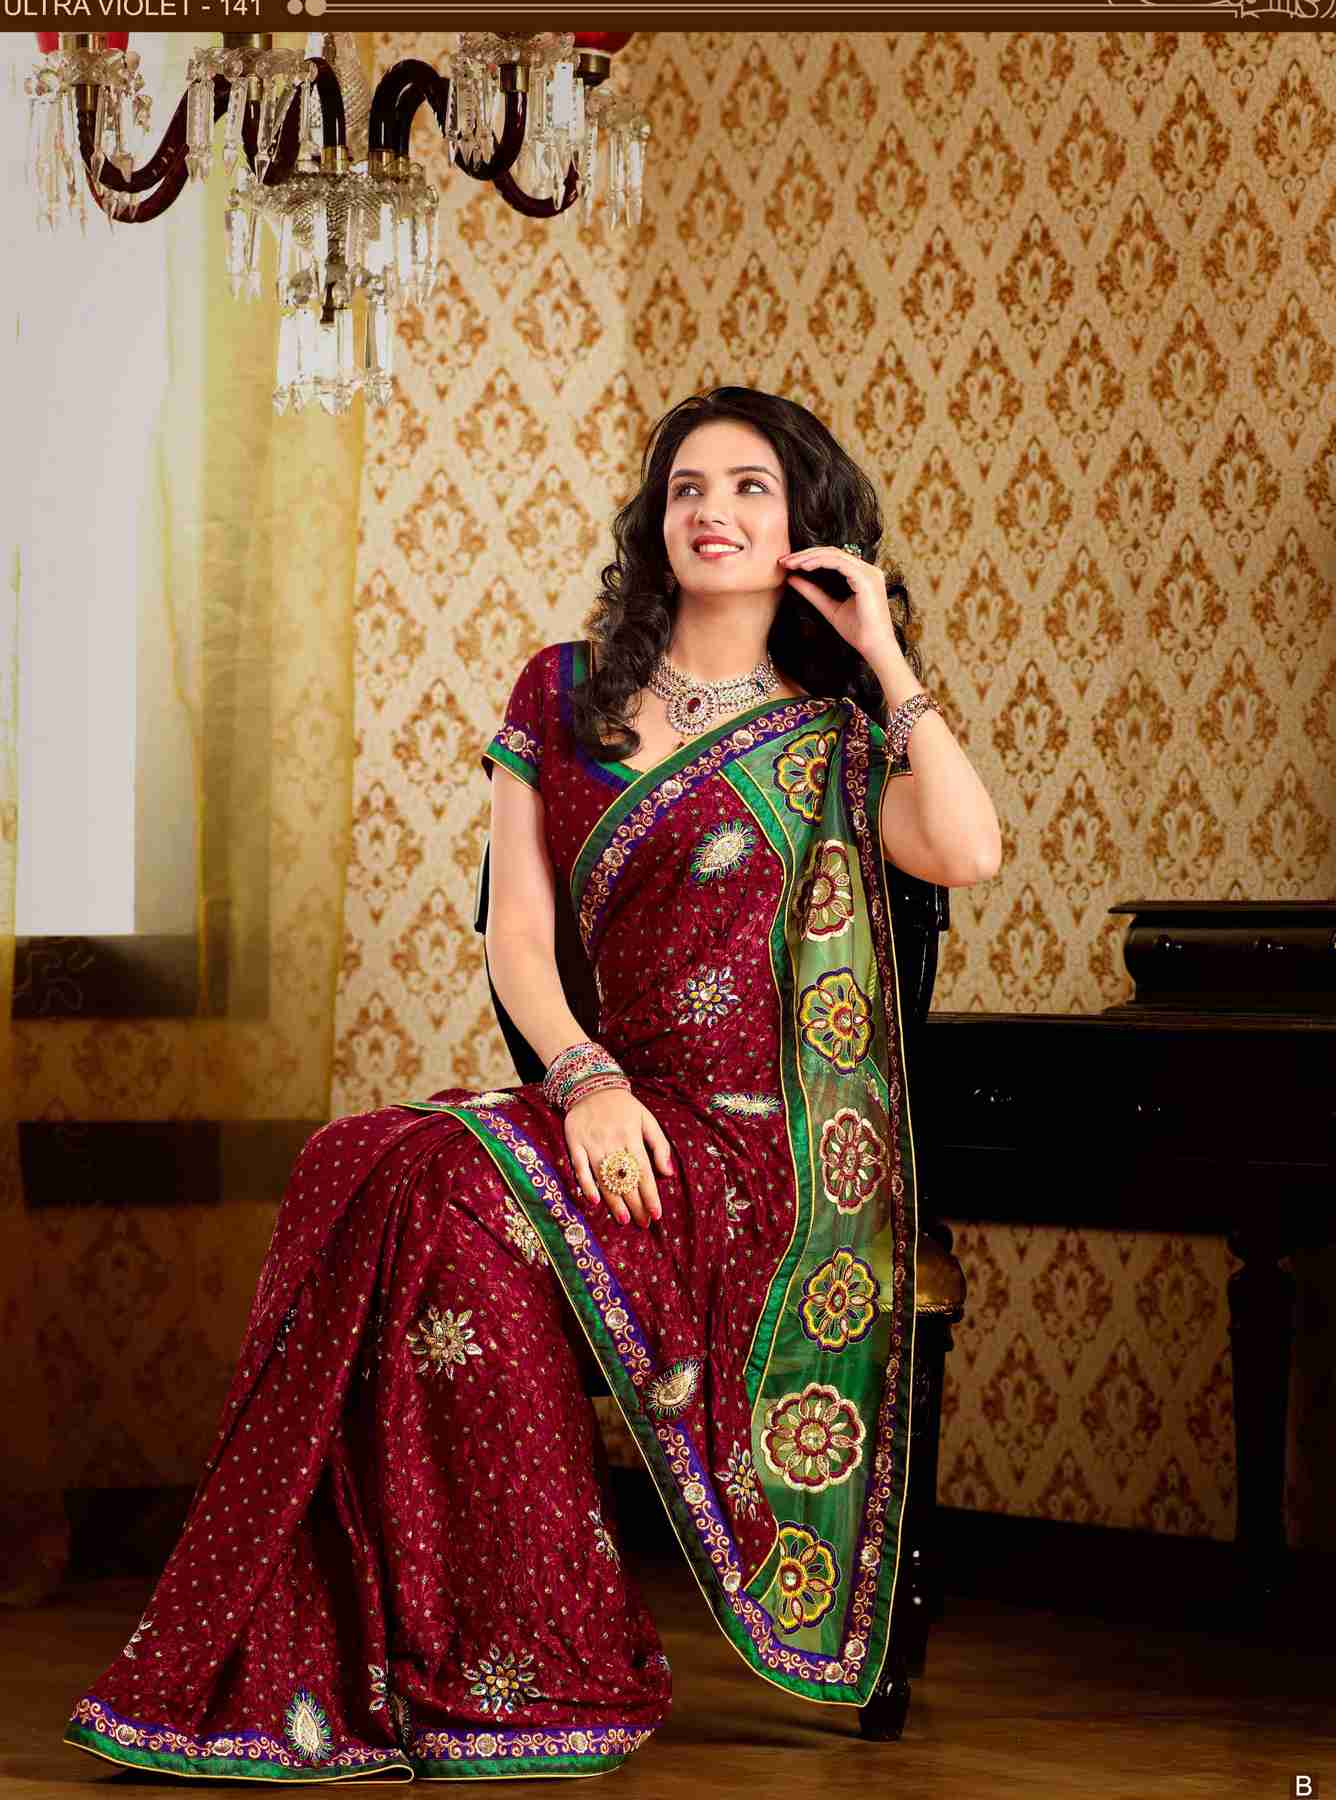 Deepshika Maroon Faux Crepe Luxury Party Wear Sari saree